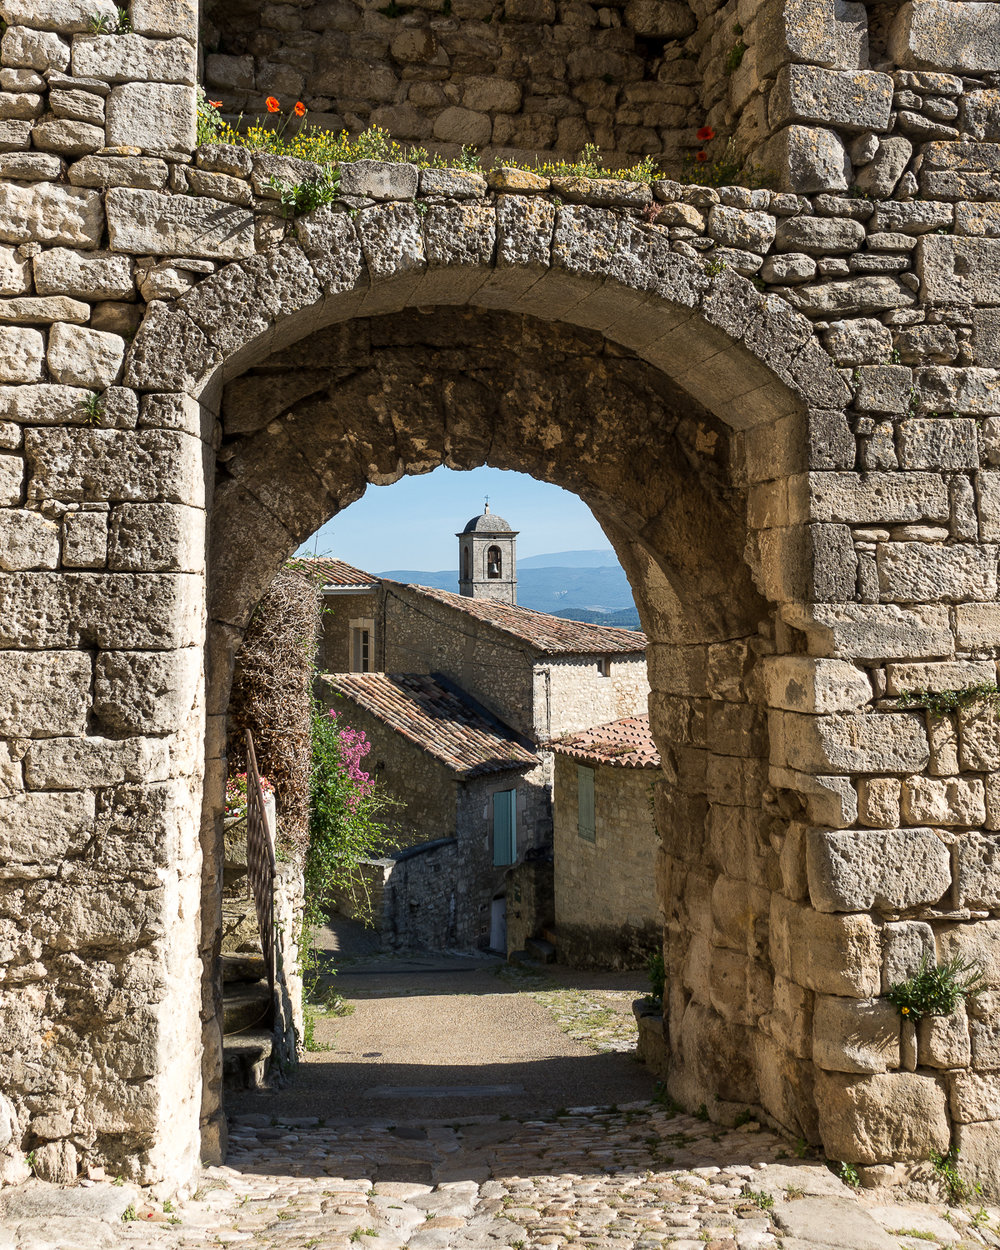 Stone archway in Lacoste, France.